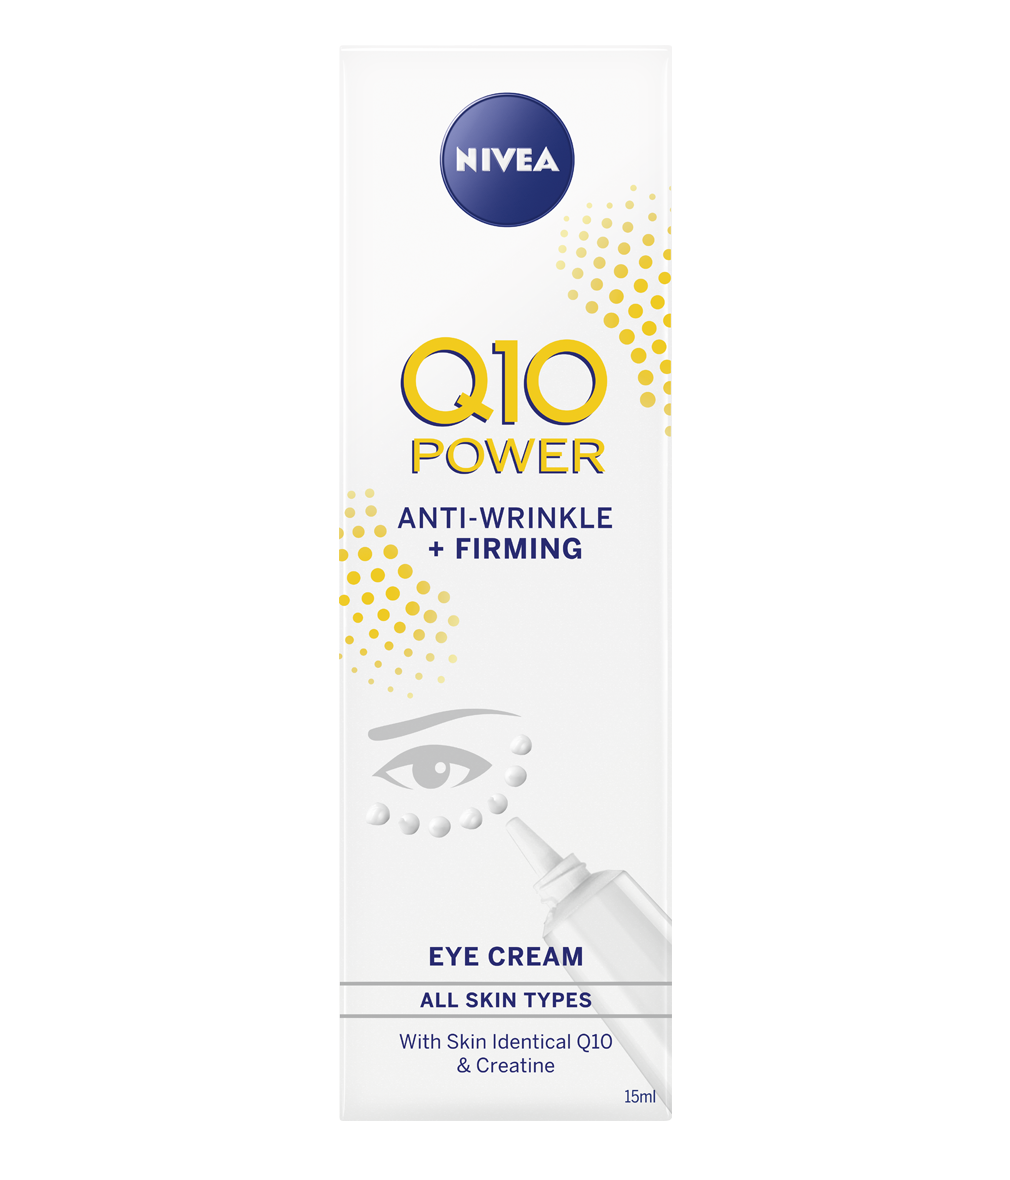 Nivea Q10 Power Eye Cream, Anti-Wrinkle, Anti-Ageing Eye Cream 15ml